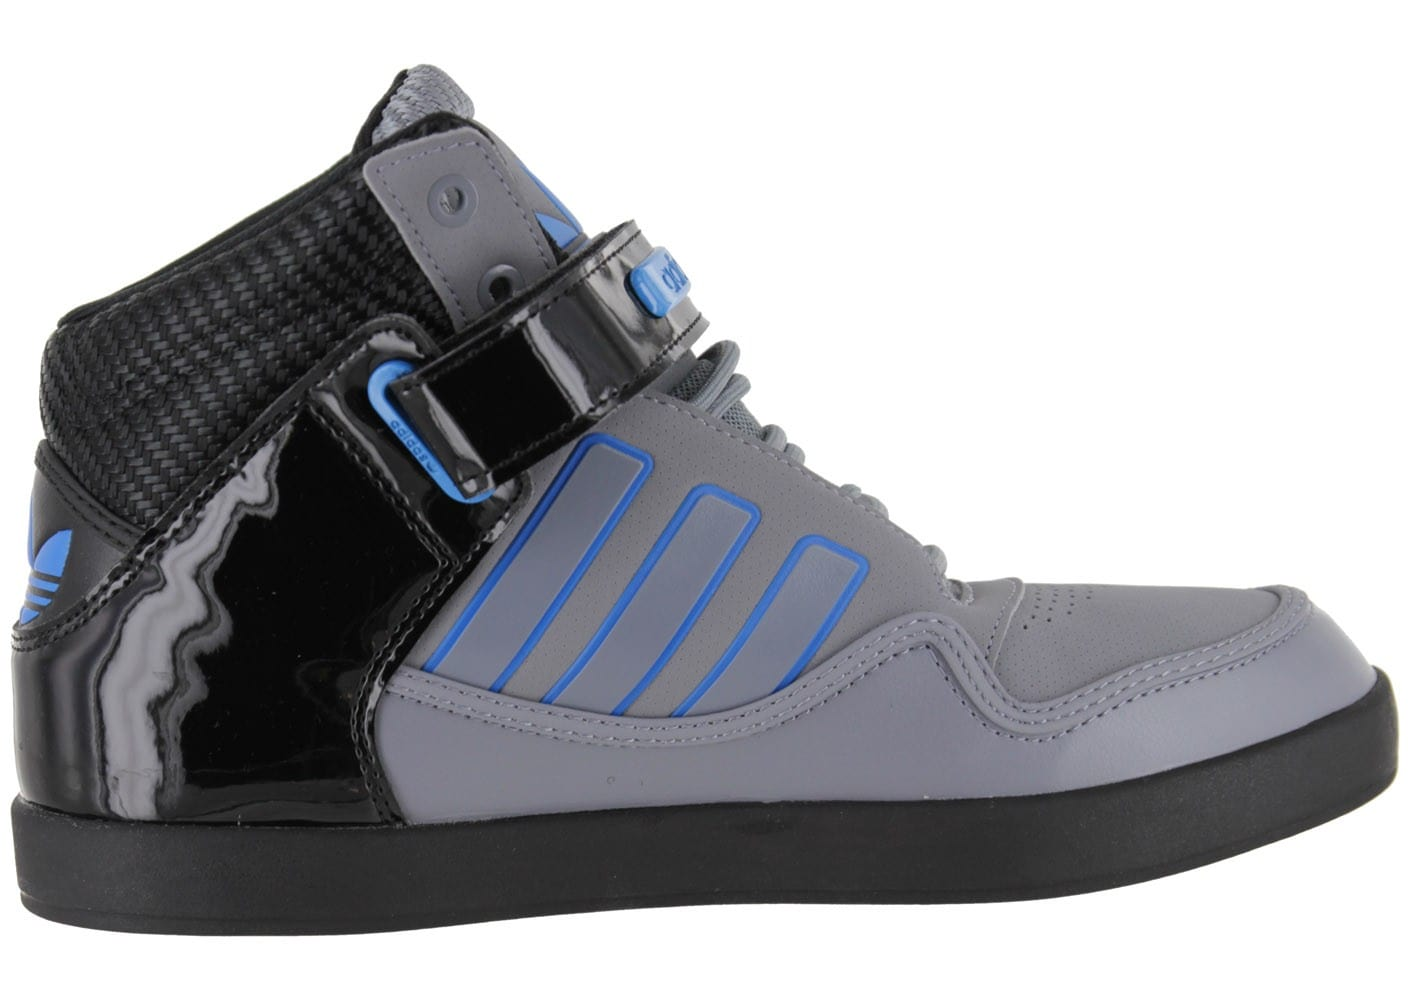 adidas Adi rise 2.0 Grise Noire Chaussures Baskets homme